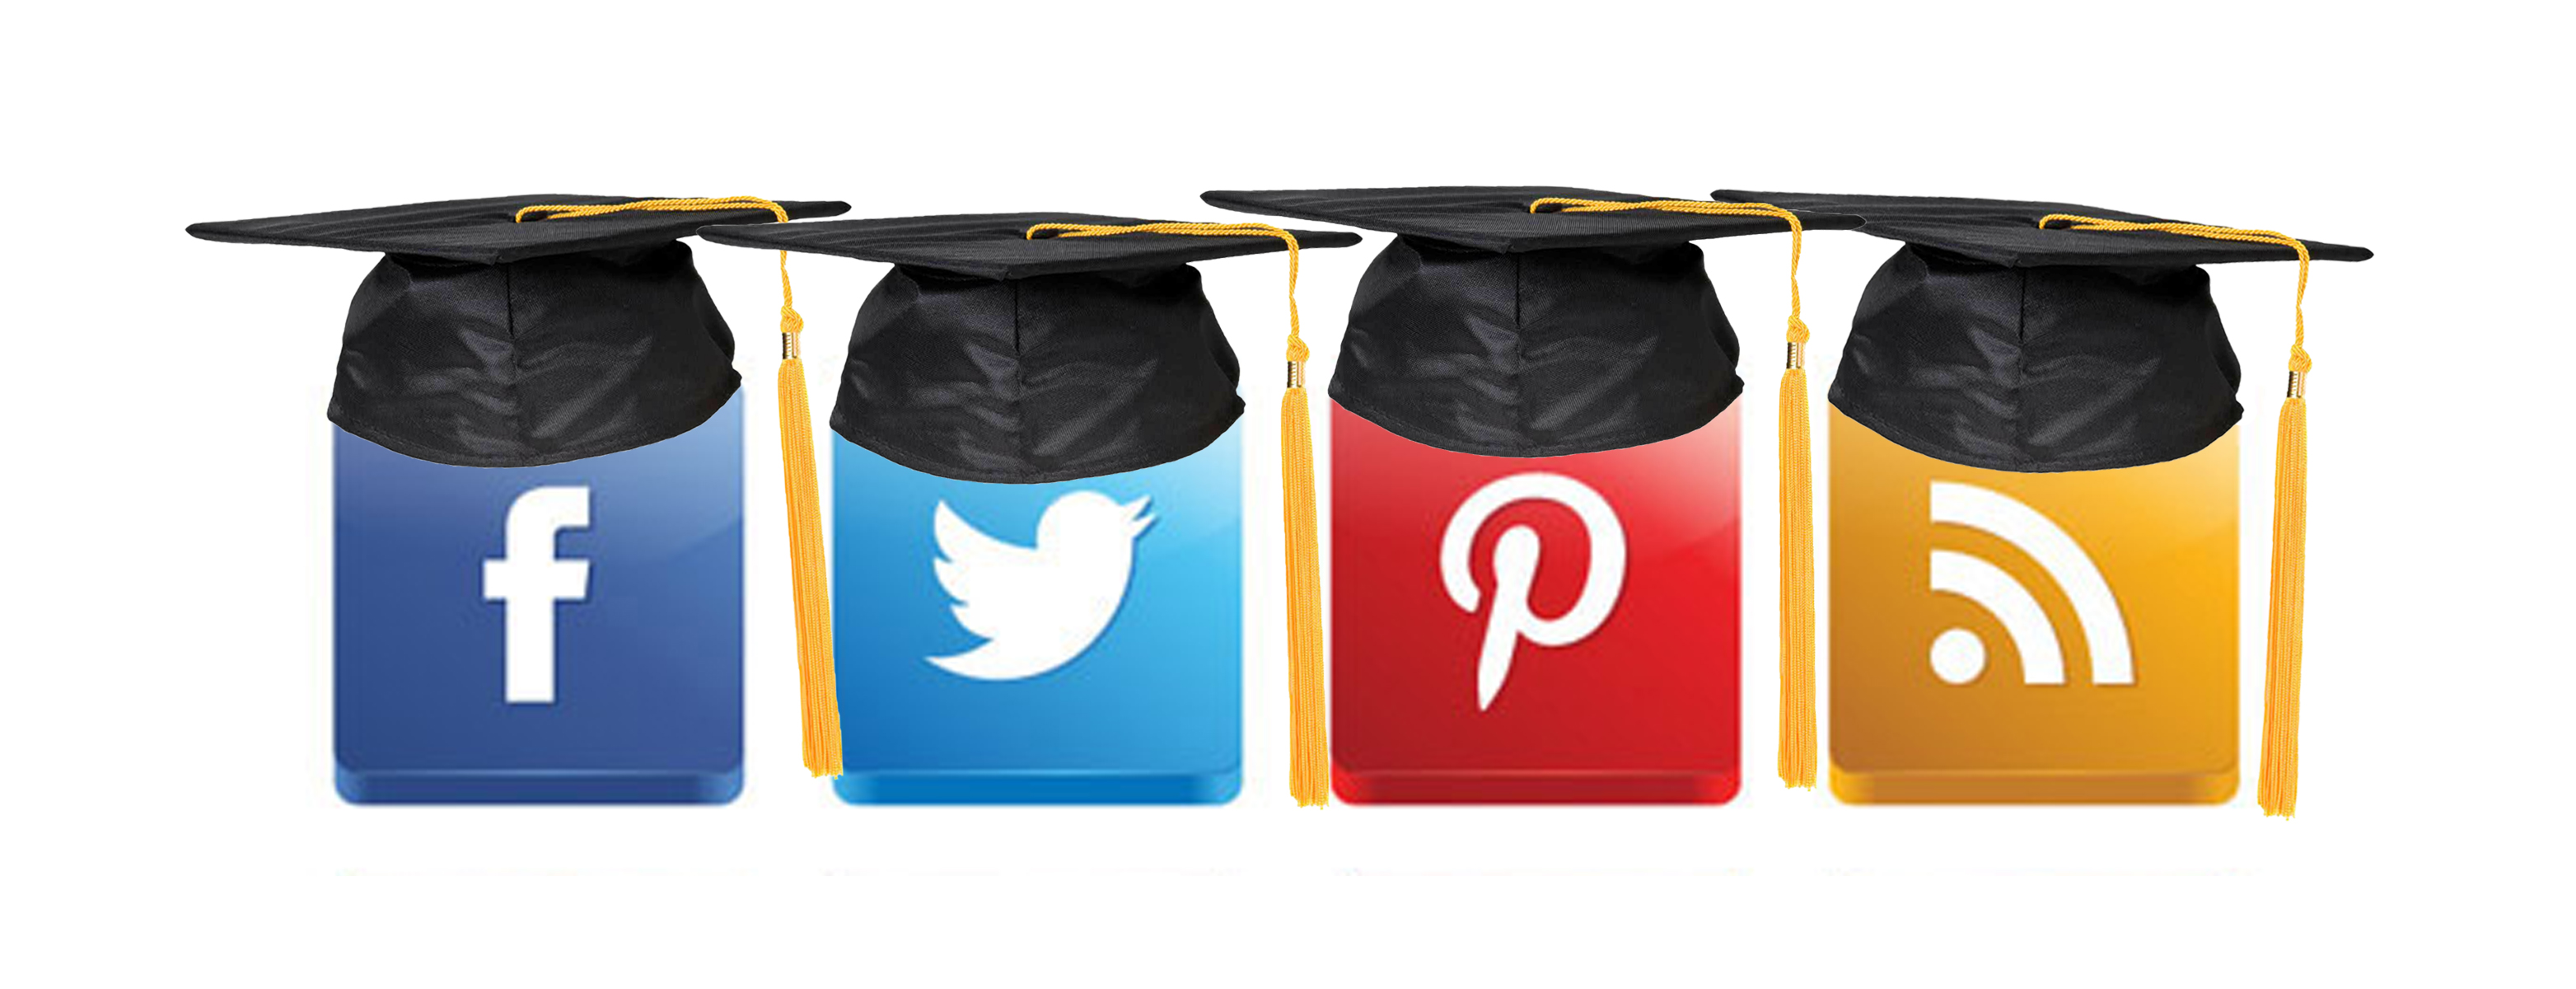 Mortar board with icons for social media Image supplied courtesy of StartBloggingOnline.com